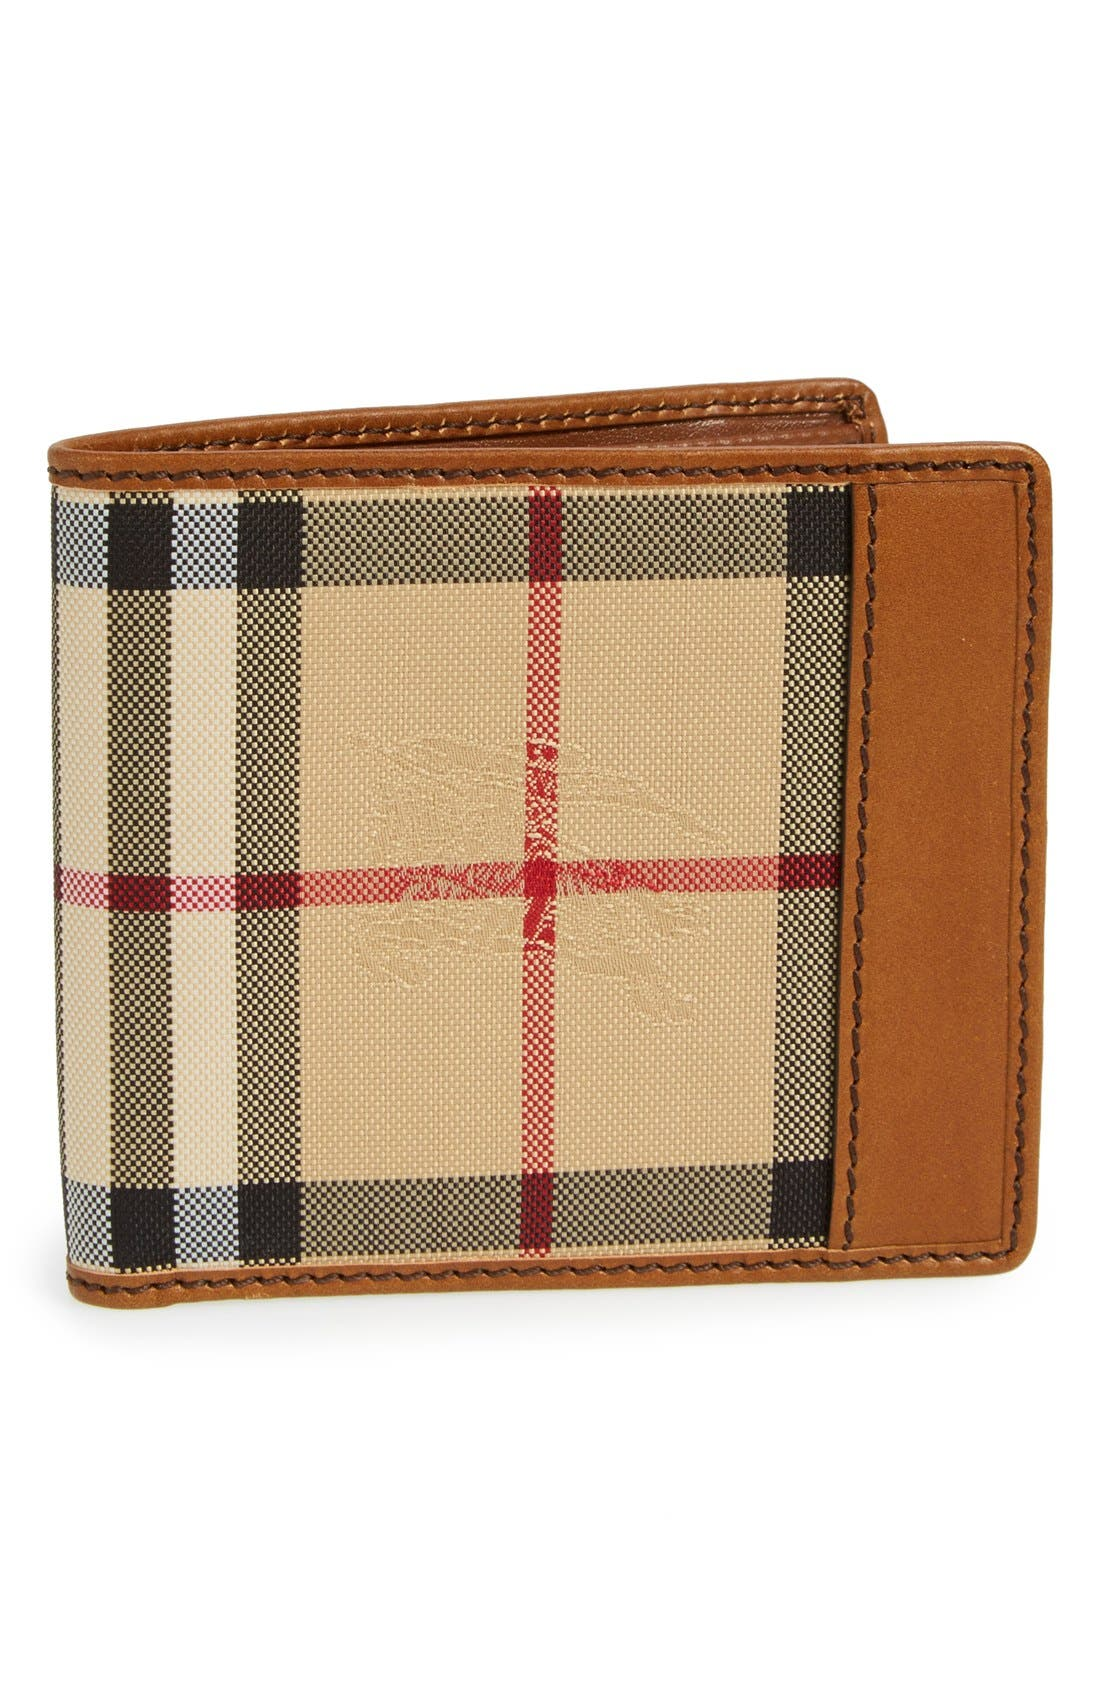 Alternate Image 1 Selected - Burberry Horseferry Check Billfold Wallet